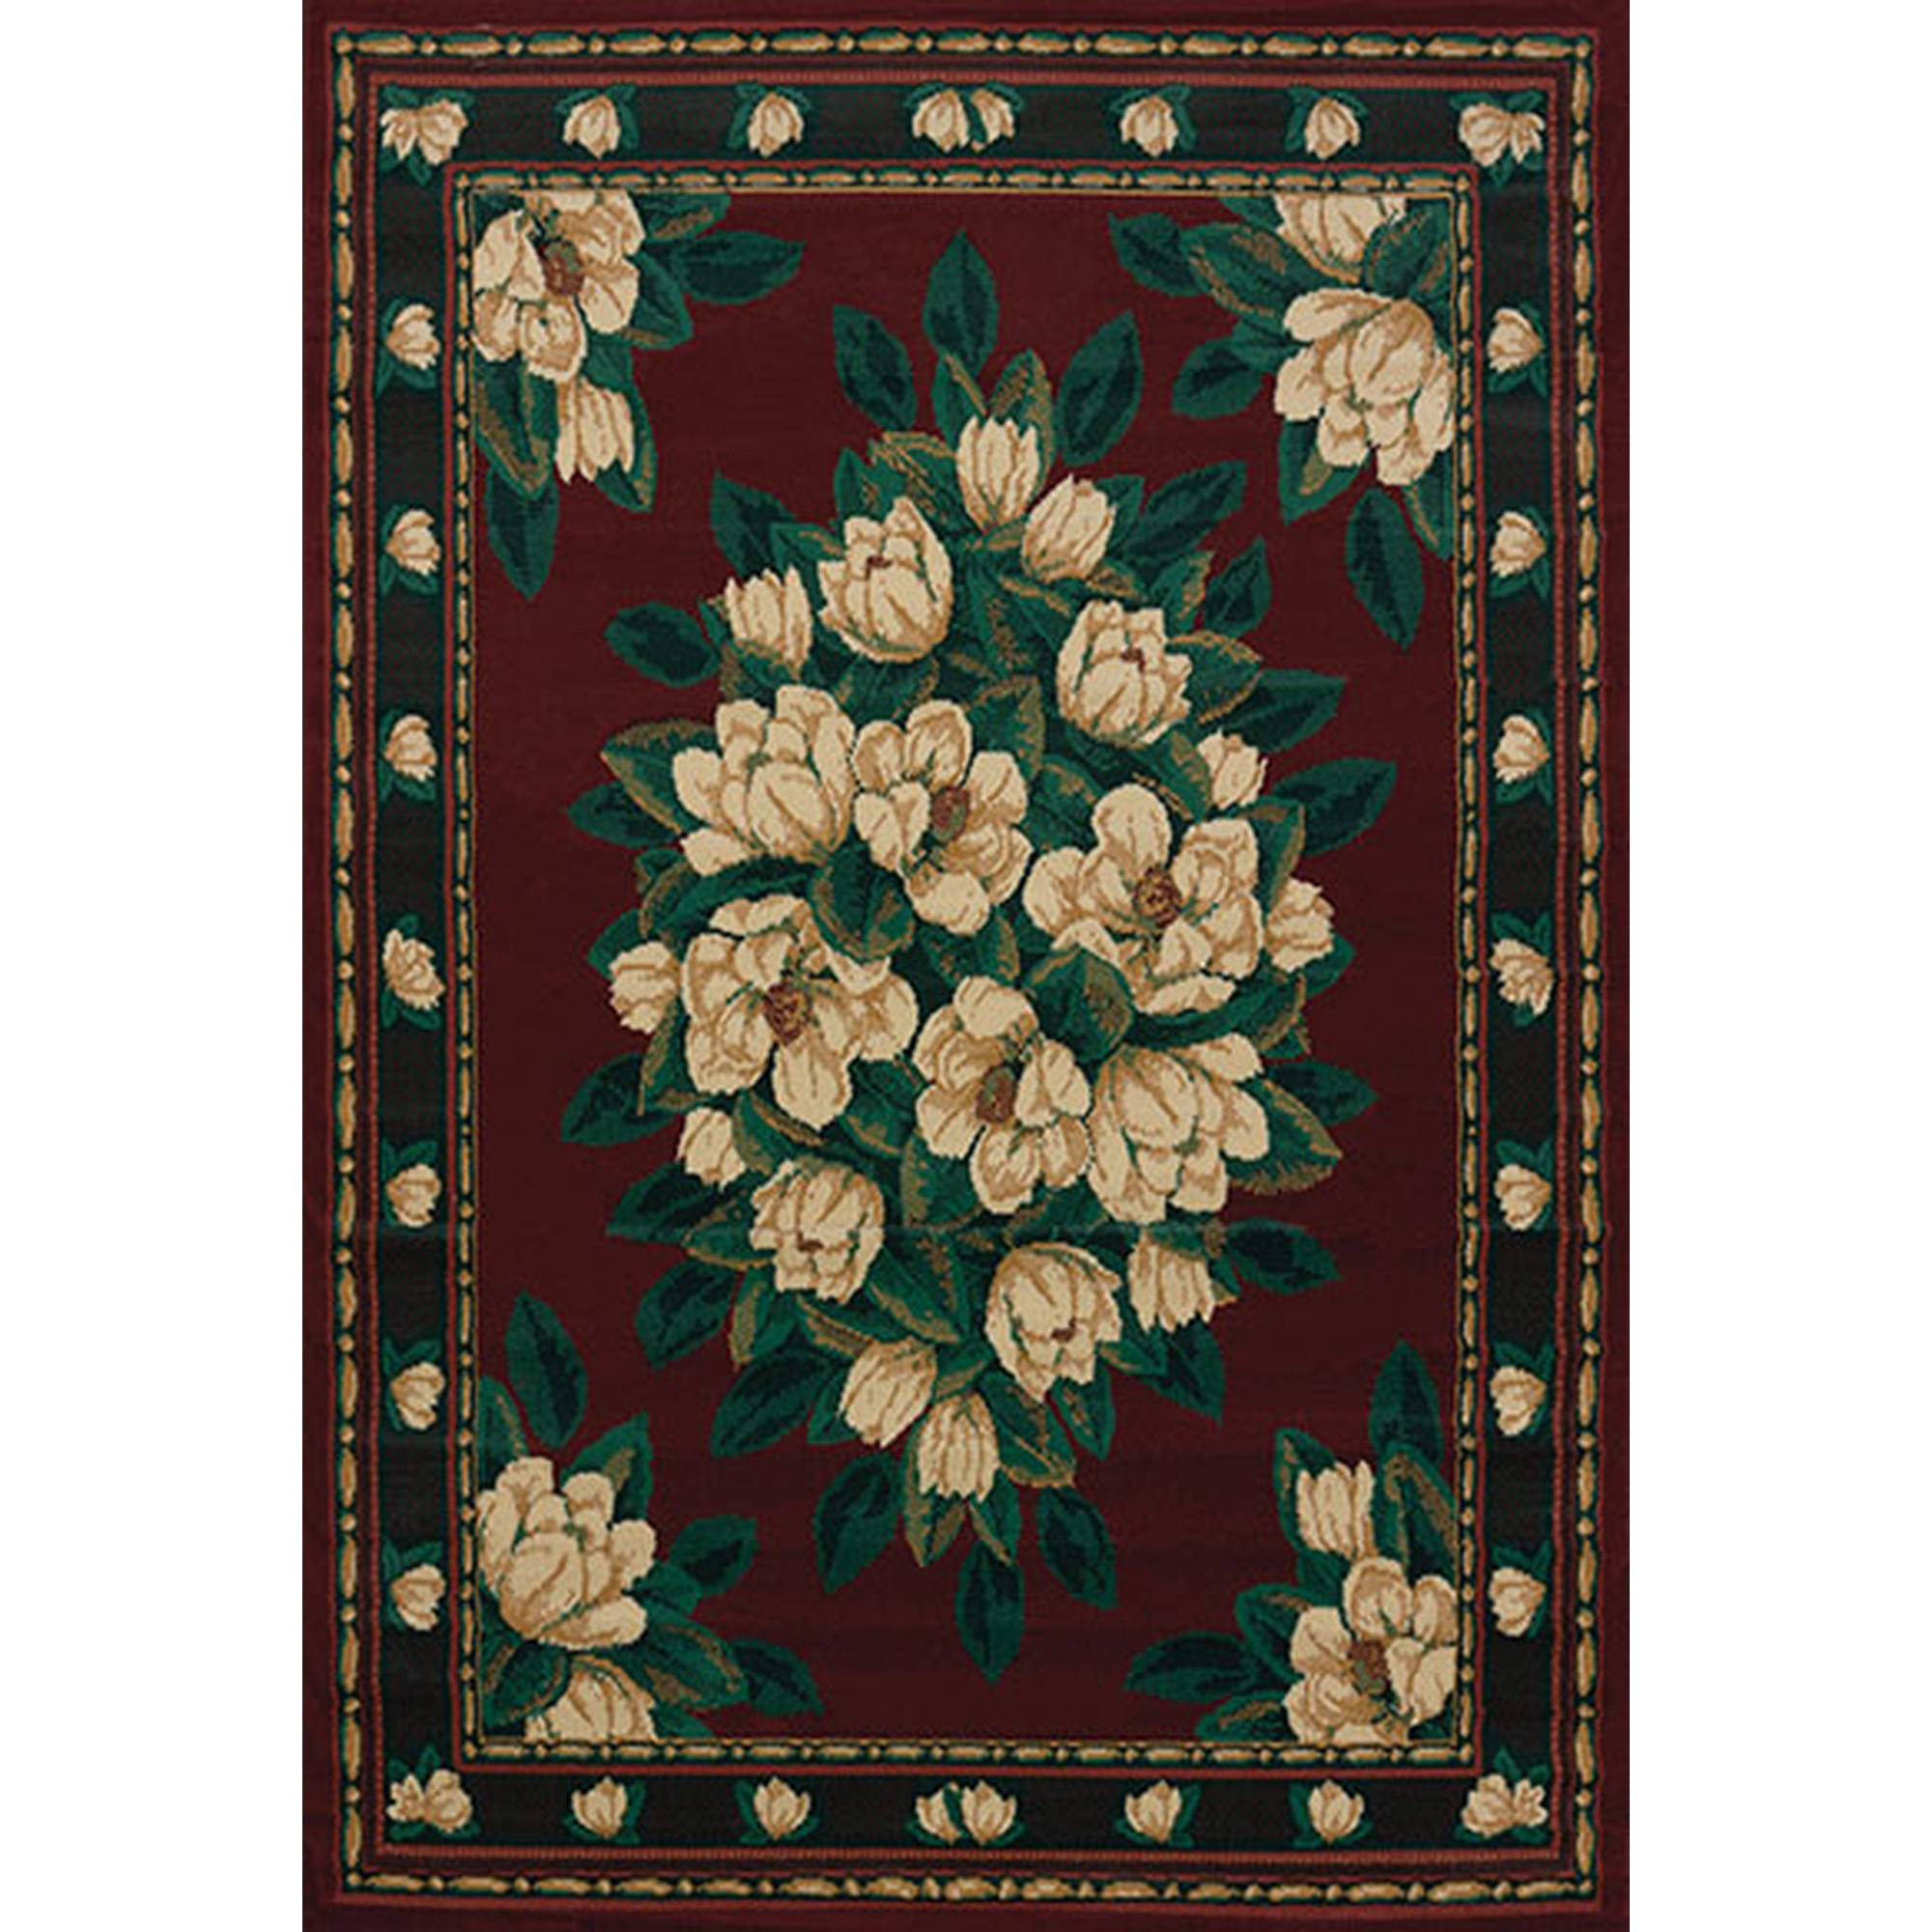 United Weavers Brunswick Eloise Woven Olefin Scatter Rug